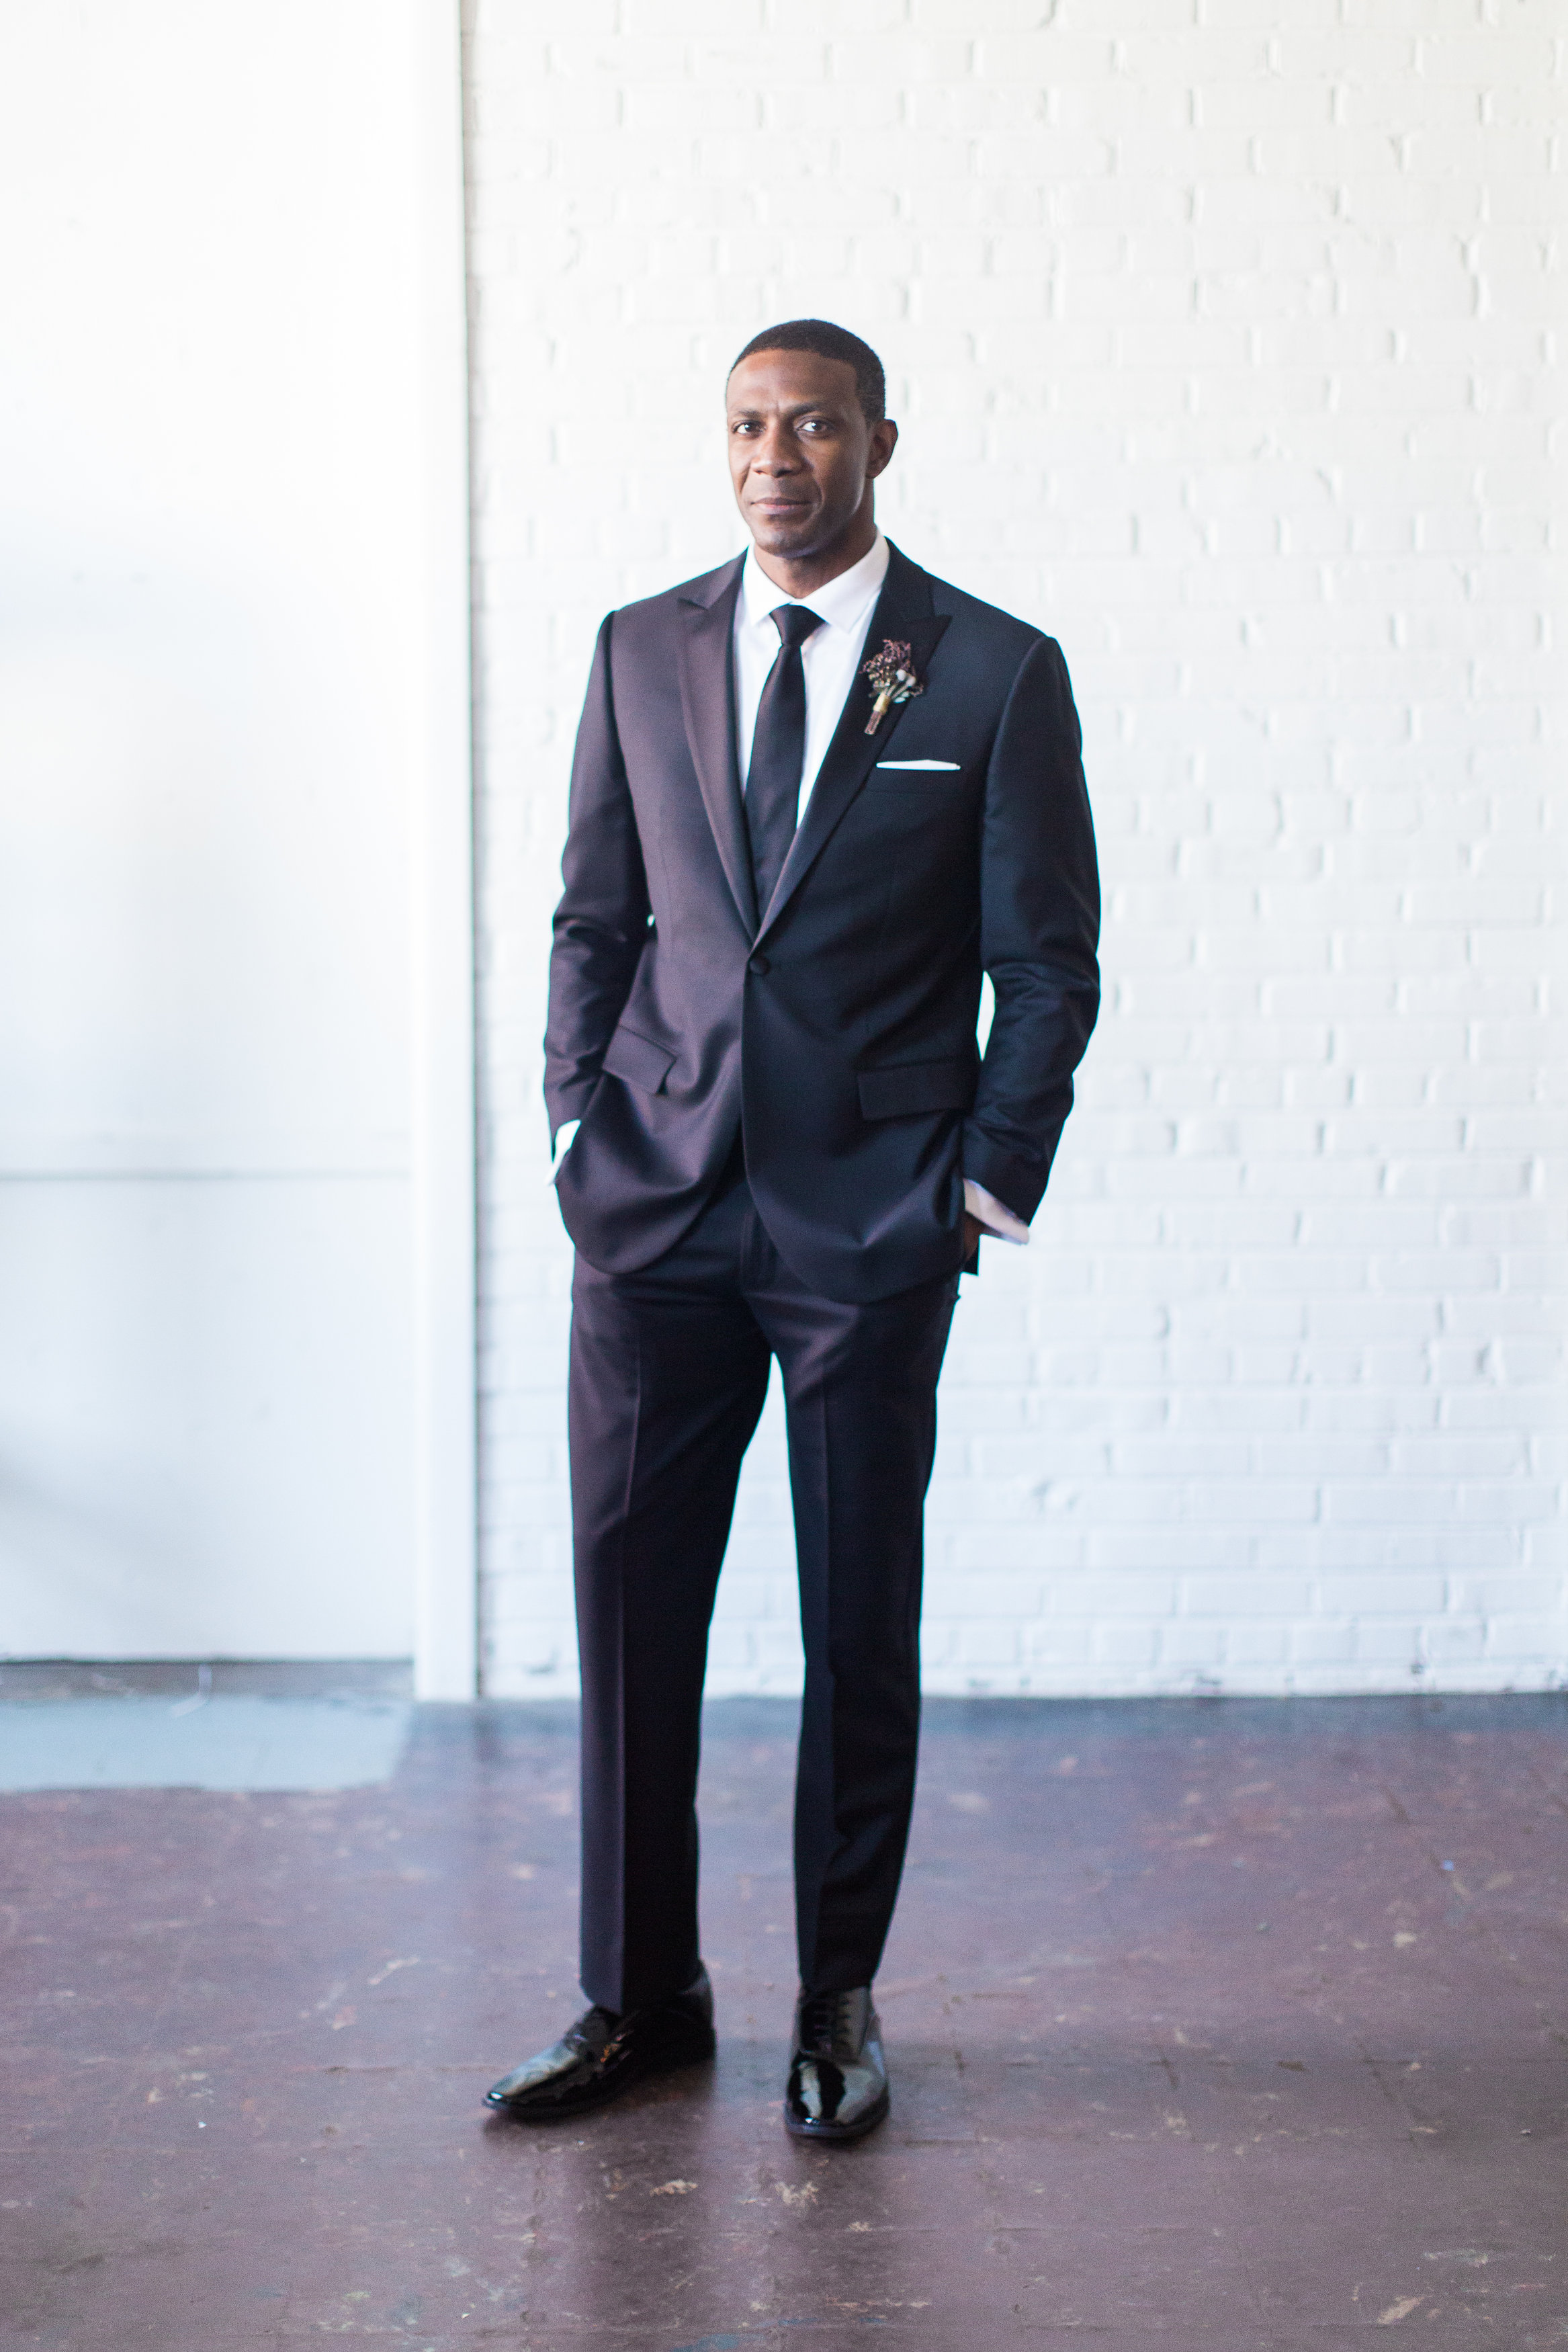 Fit - Fit is paramount. Making a better fitting rental was the reason we stared Lapel.Our suits and tuxedos are designed slim through the body with a higher armhole. A perfect blend of classic and contemporary.